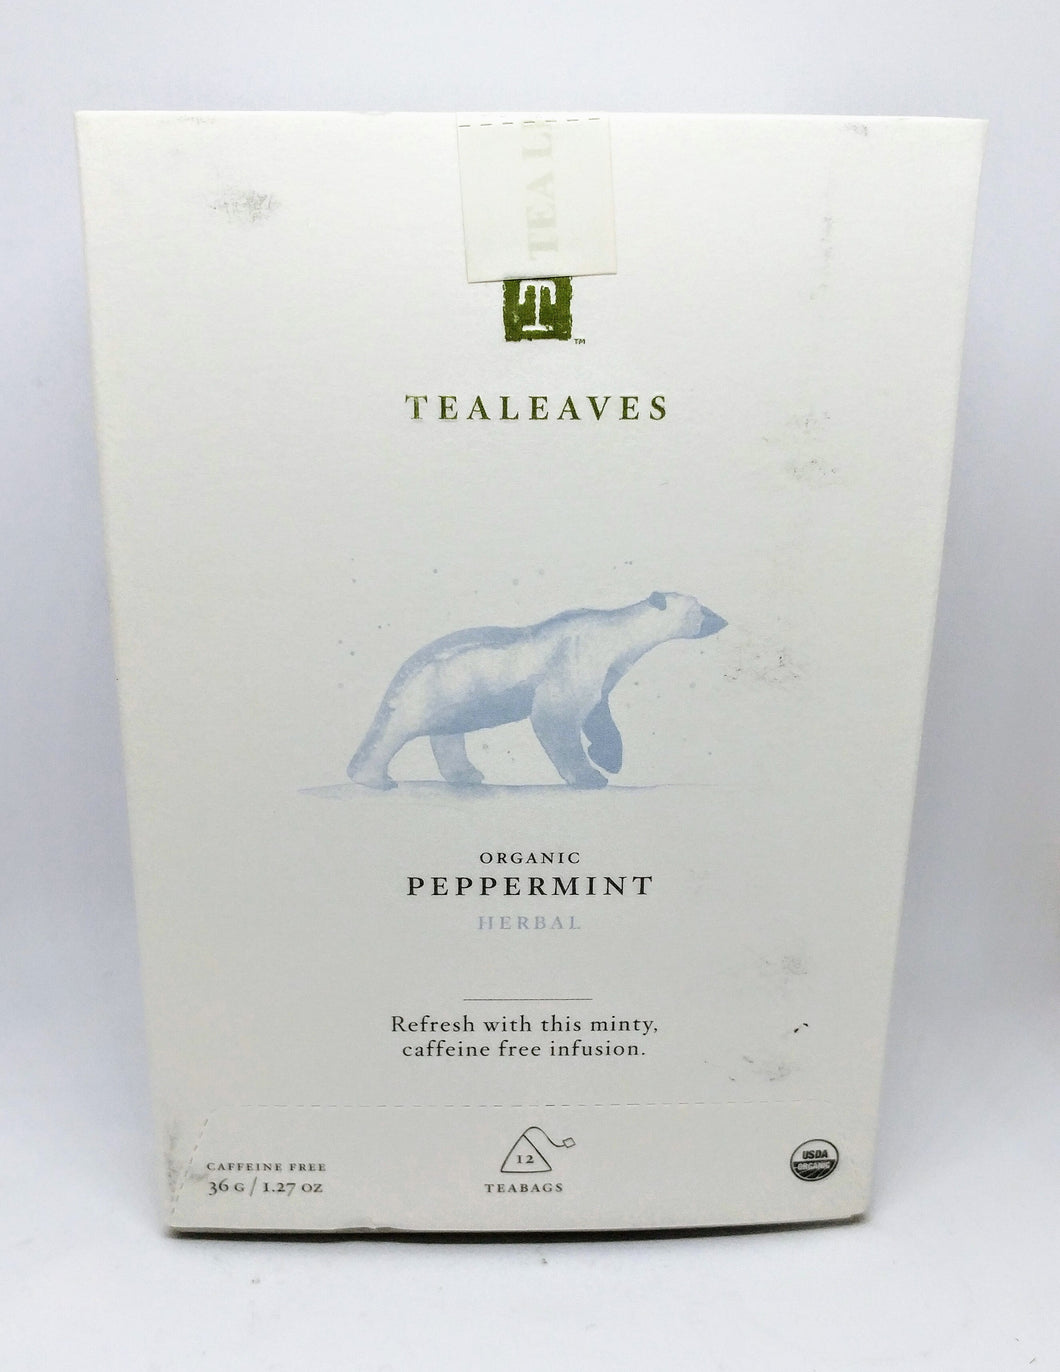 Tealeaves Tea - Organic Peppermint Herbal Tea 36g